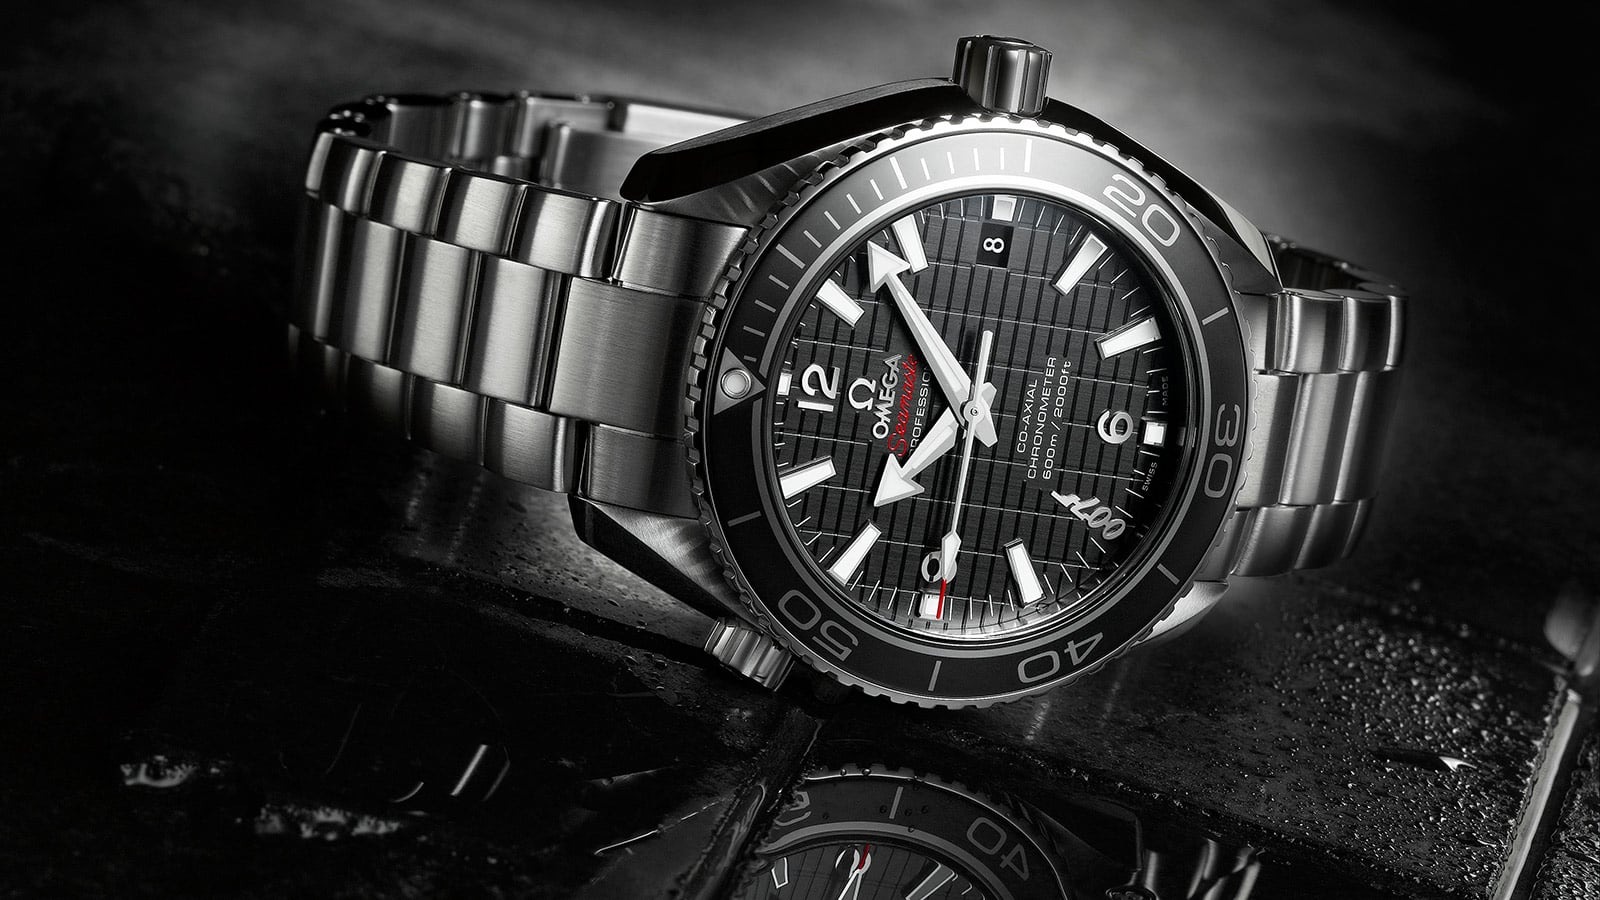 Orologi OMEGA: James Bond - Slide 6 - 9628